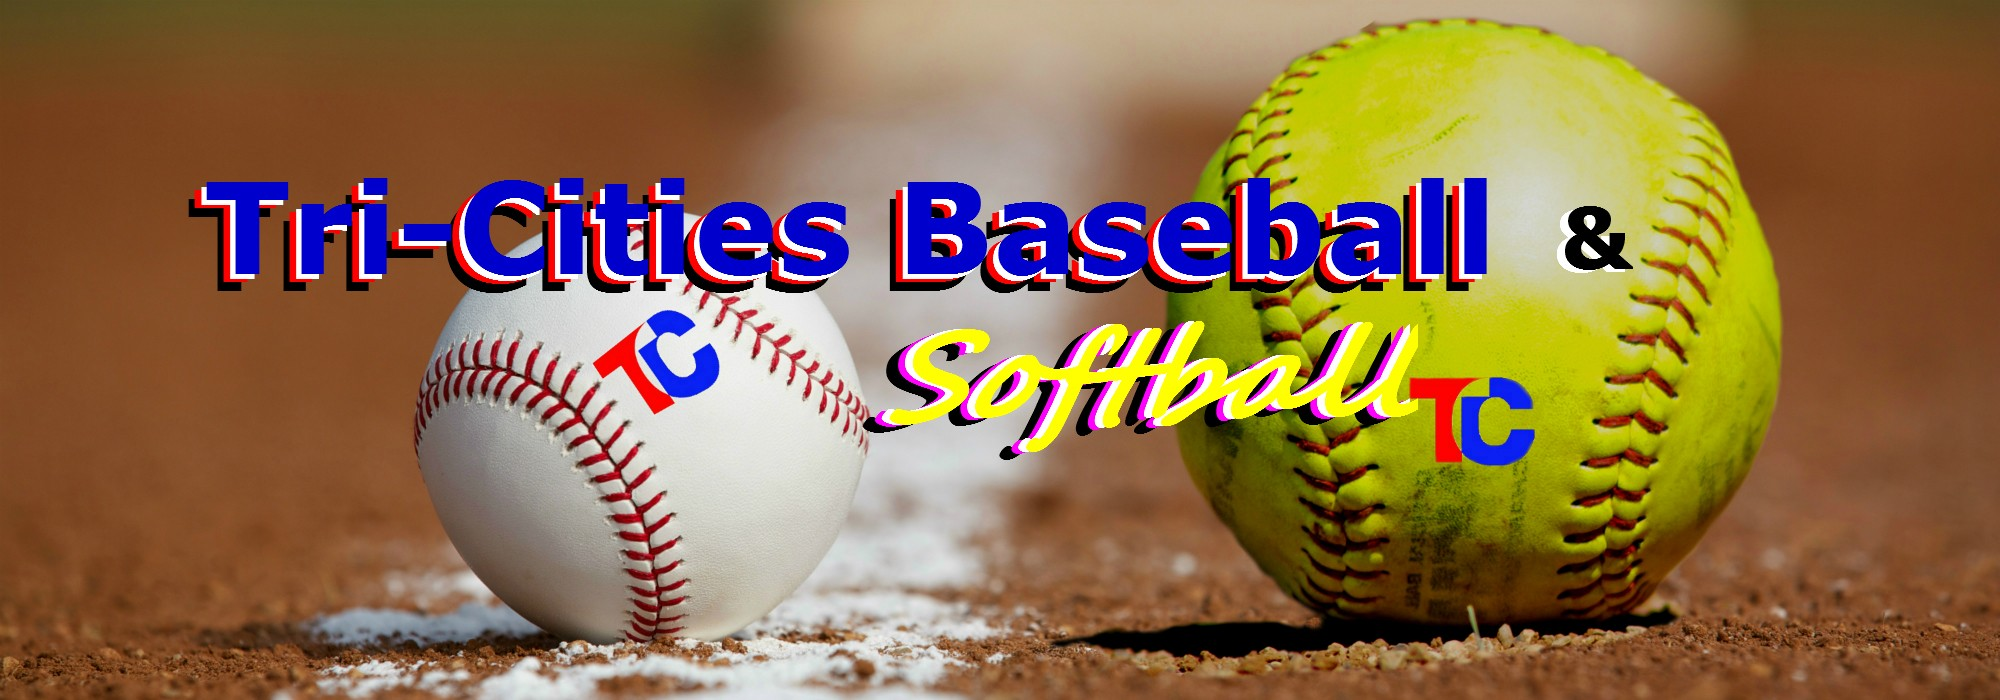 Tri-Cities Baseball & Softball - Powered by SportsSignUp Play